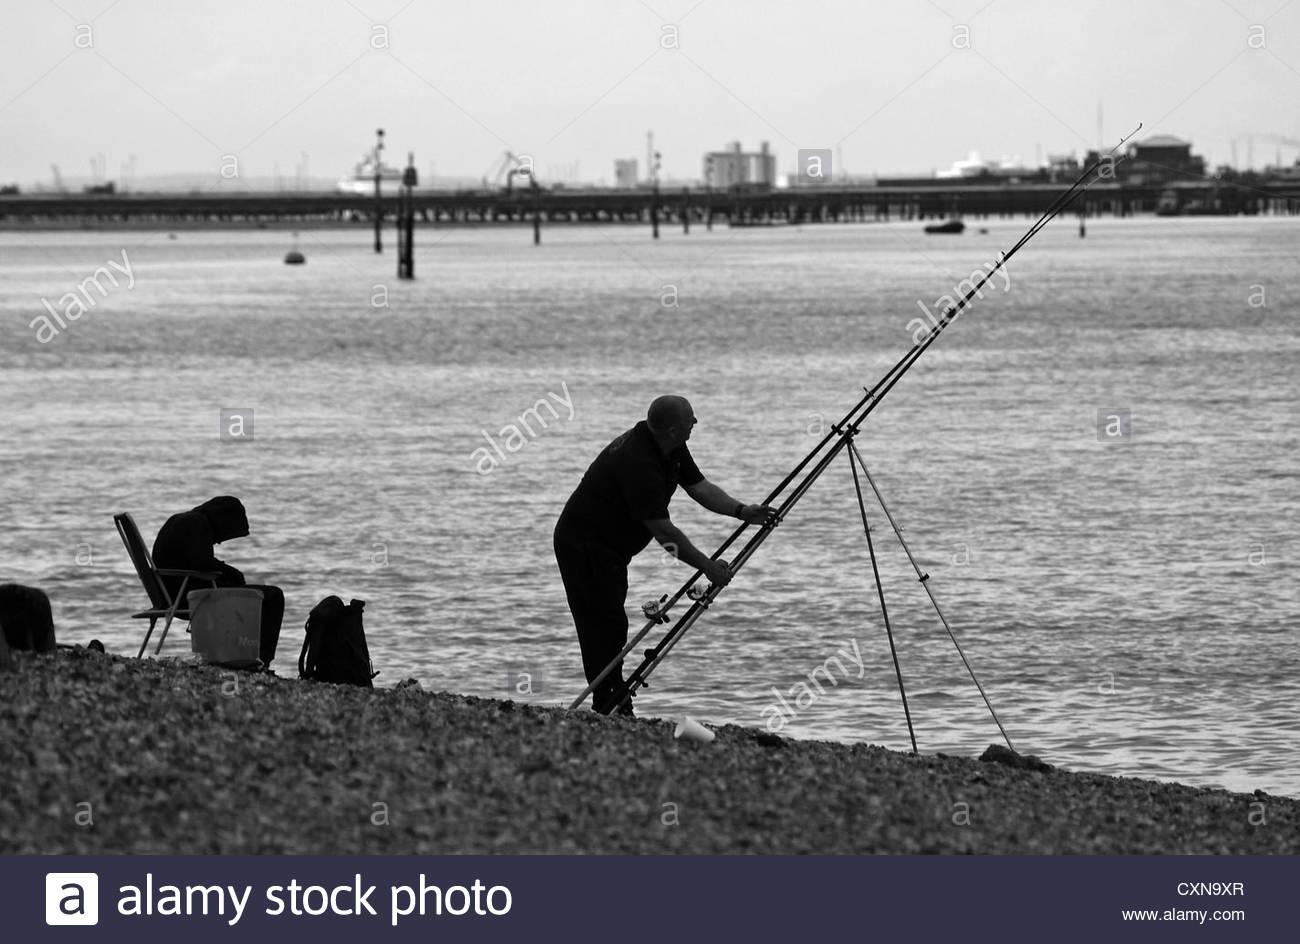 Black & White landscape image - son fishing with his father on The Solent Southampton UK on a May afternoon - Stock Image